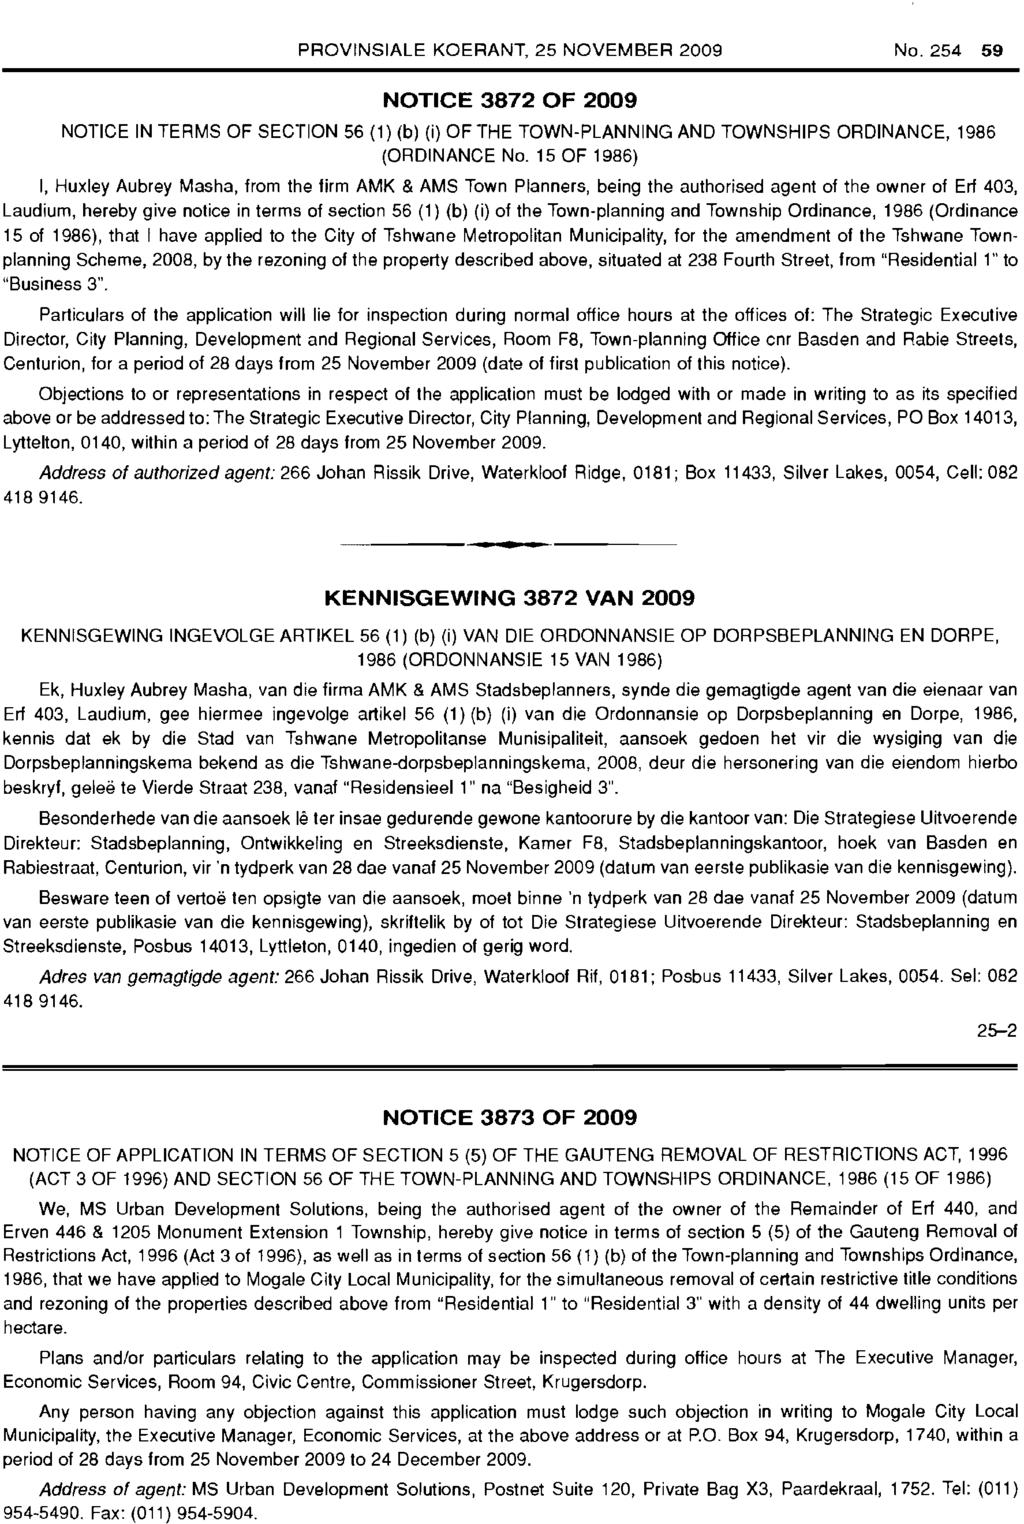 PROVINSIALE KOERANT, 25 NOVEMBER 2009 NO.254 59 NOTICE 3872 OF 2009 NOTICE IN TERMS OF SECTION 56 (1) (b) (i) OF THE TOWN-PLANNING AND TOWNSHIPS ORDINANCE, 1986 (ORDINANCE No.